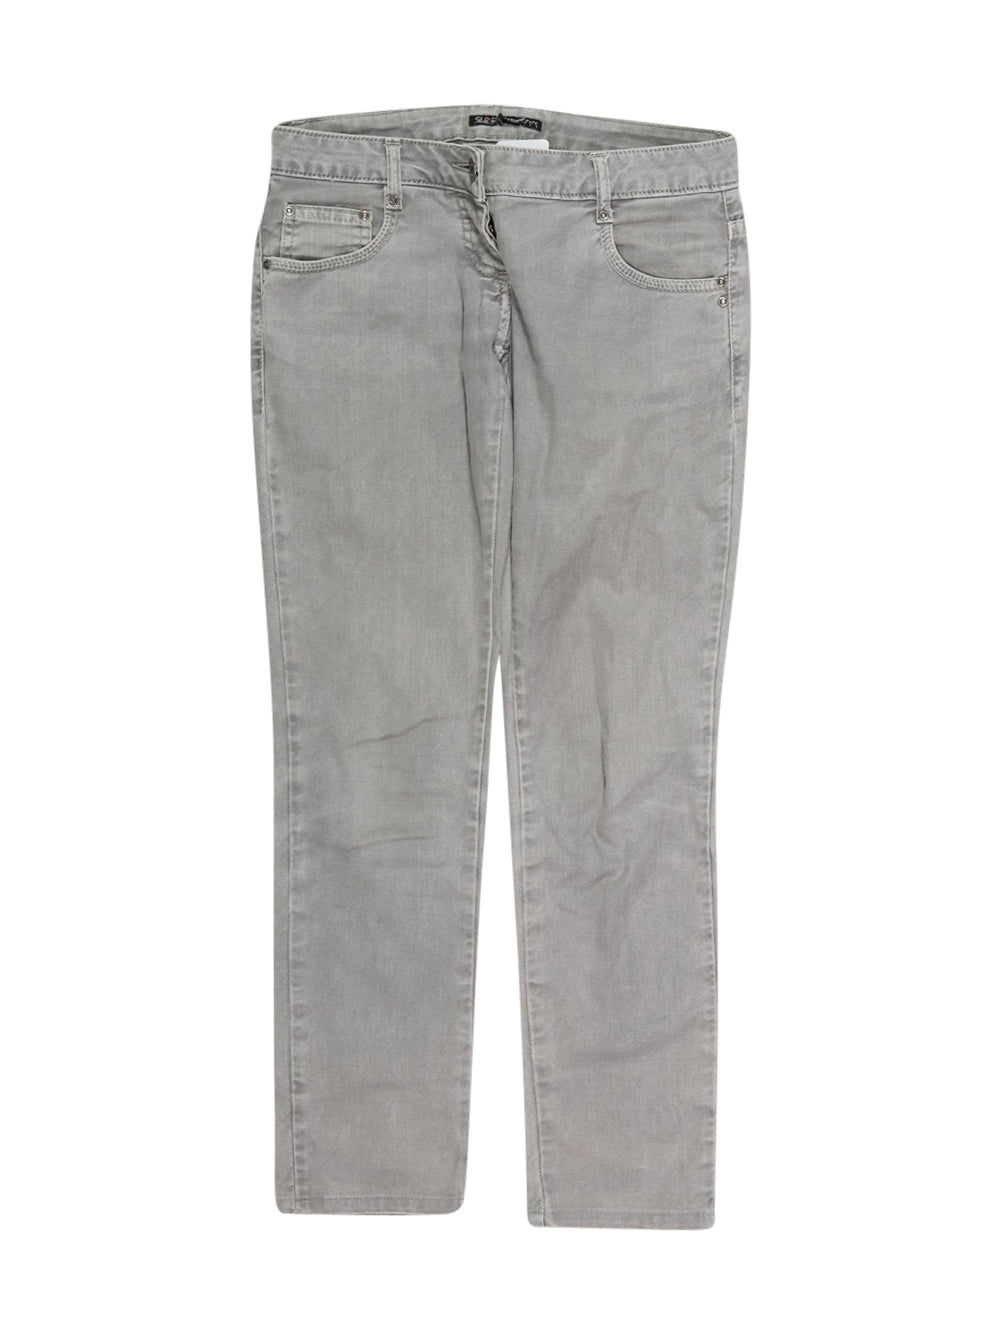 Front photo of Preloved Patrizia Pepe Grey Woman's trousers - size 8/S